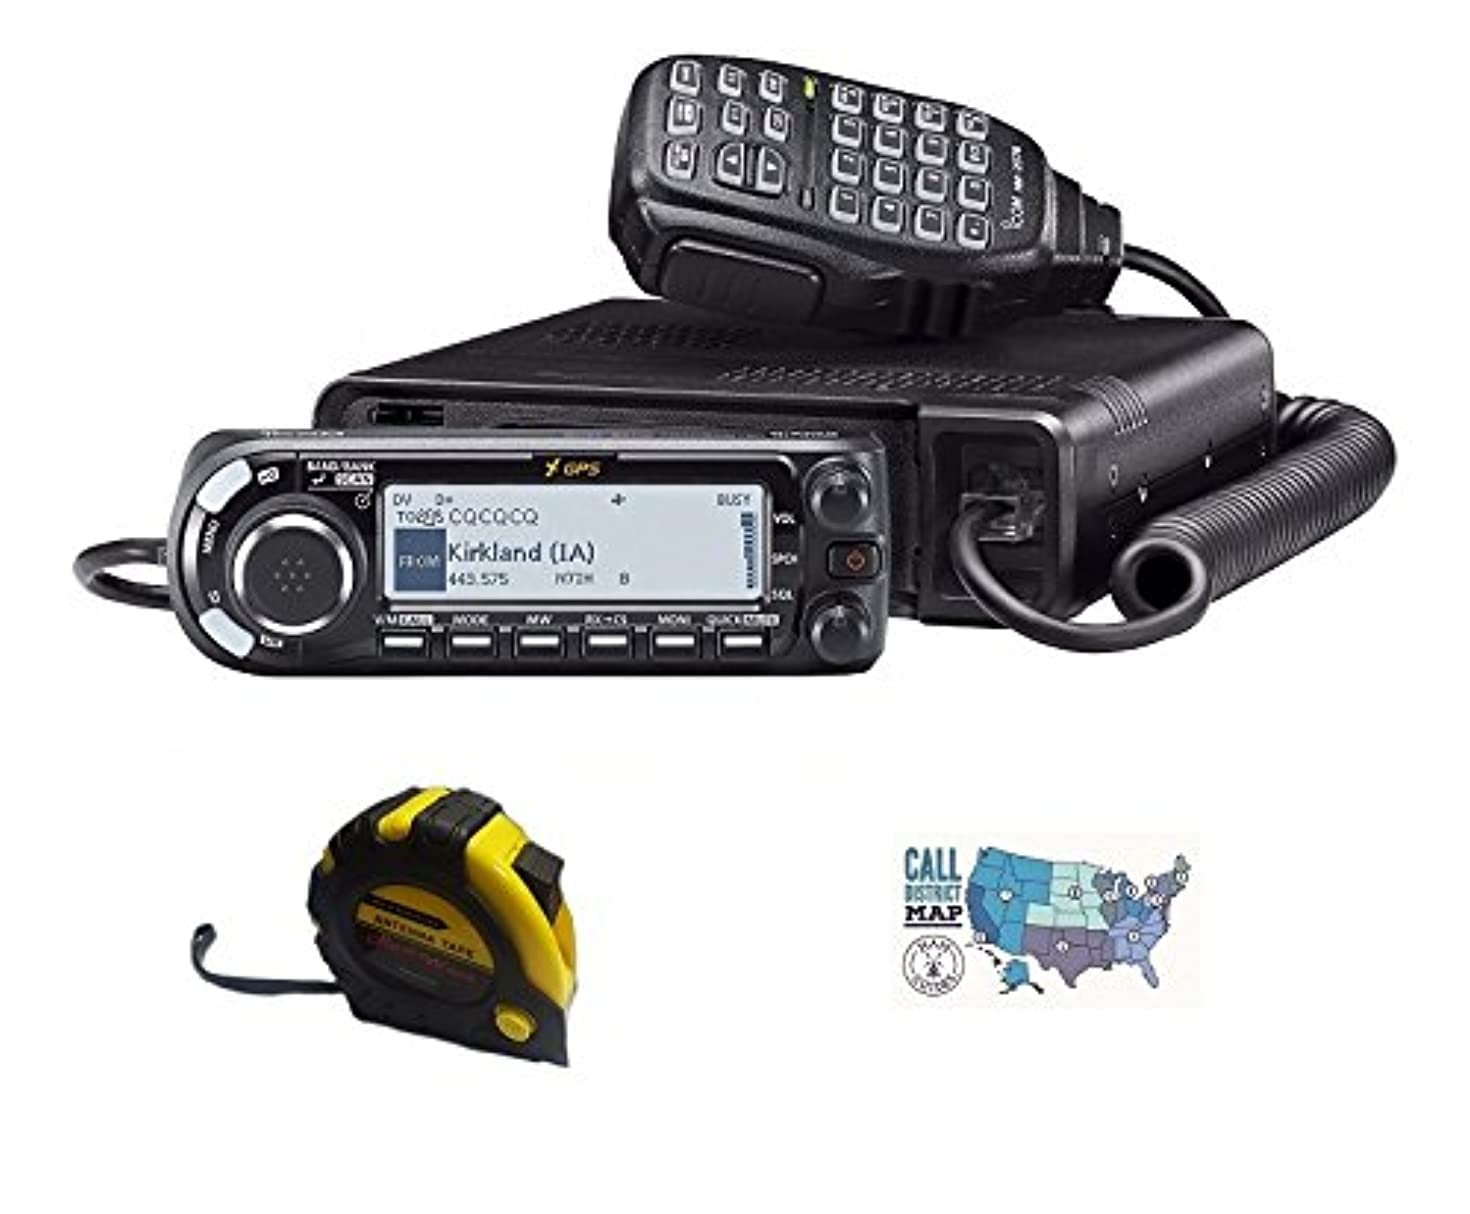 Bundle - 3 Items - Includes Icom ID-4100A 50W VHF/UHF Dual Band D-Star Transceiver with The New Radiowavz Antenna Tape (2m - 30m) and HAM Guides Quick Reference Card